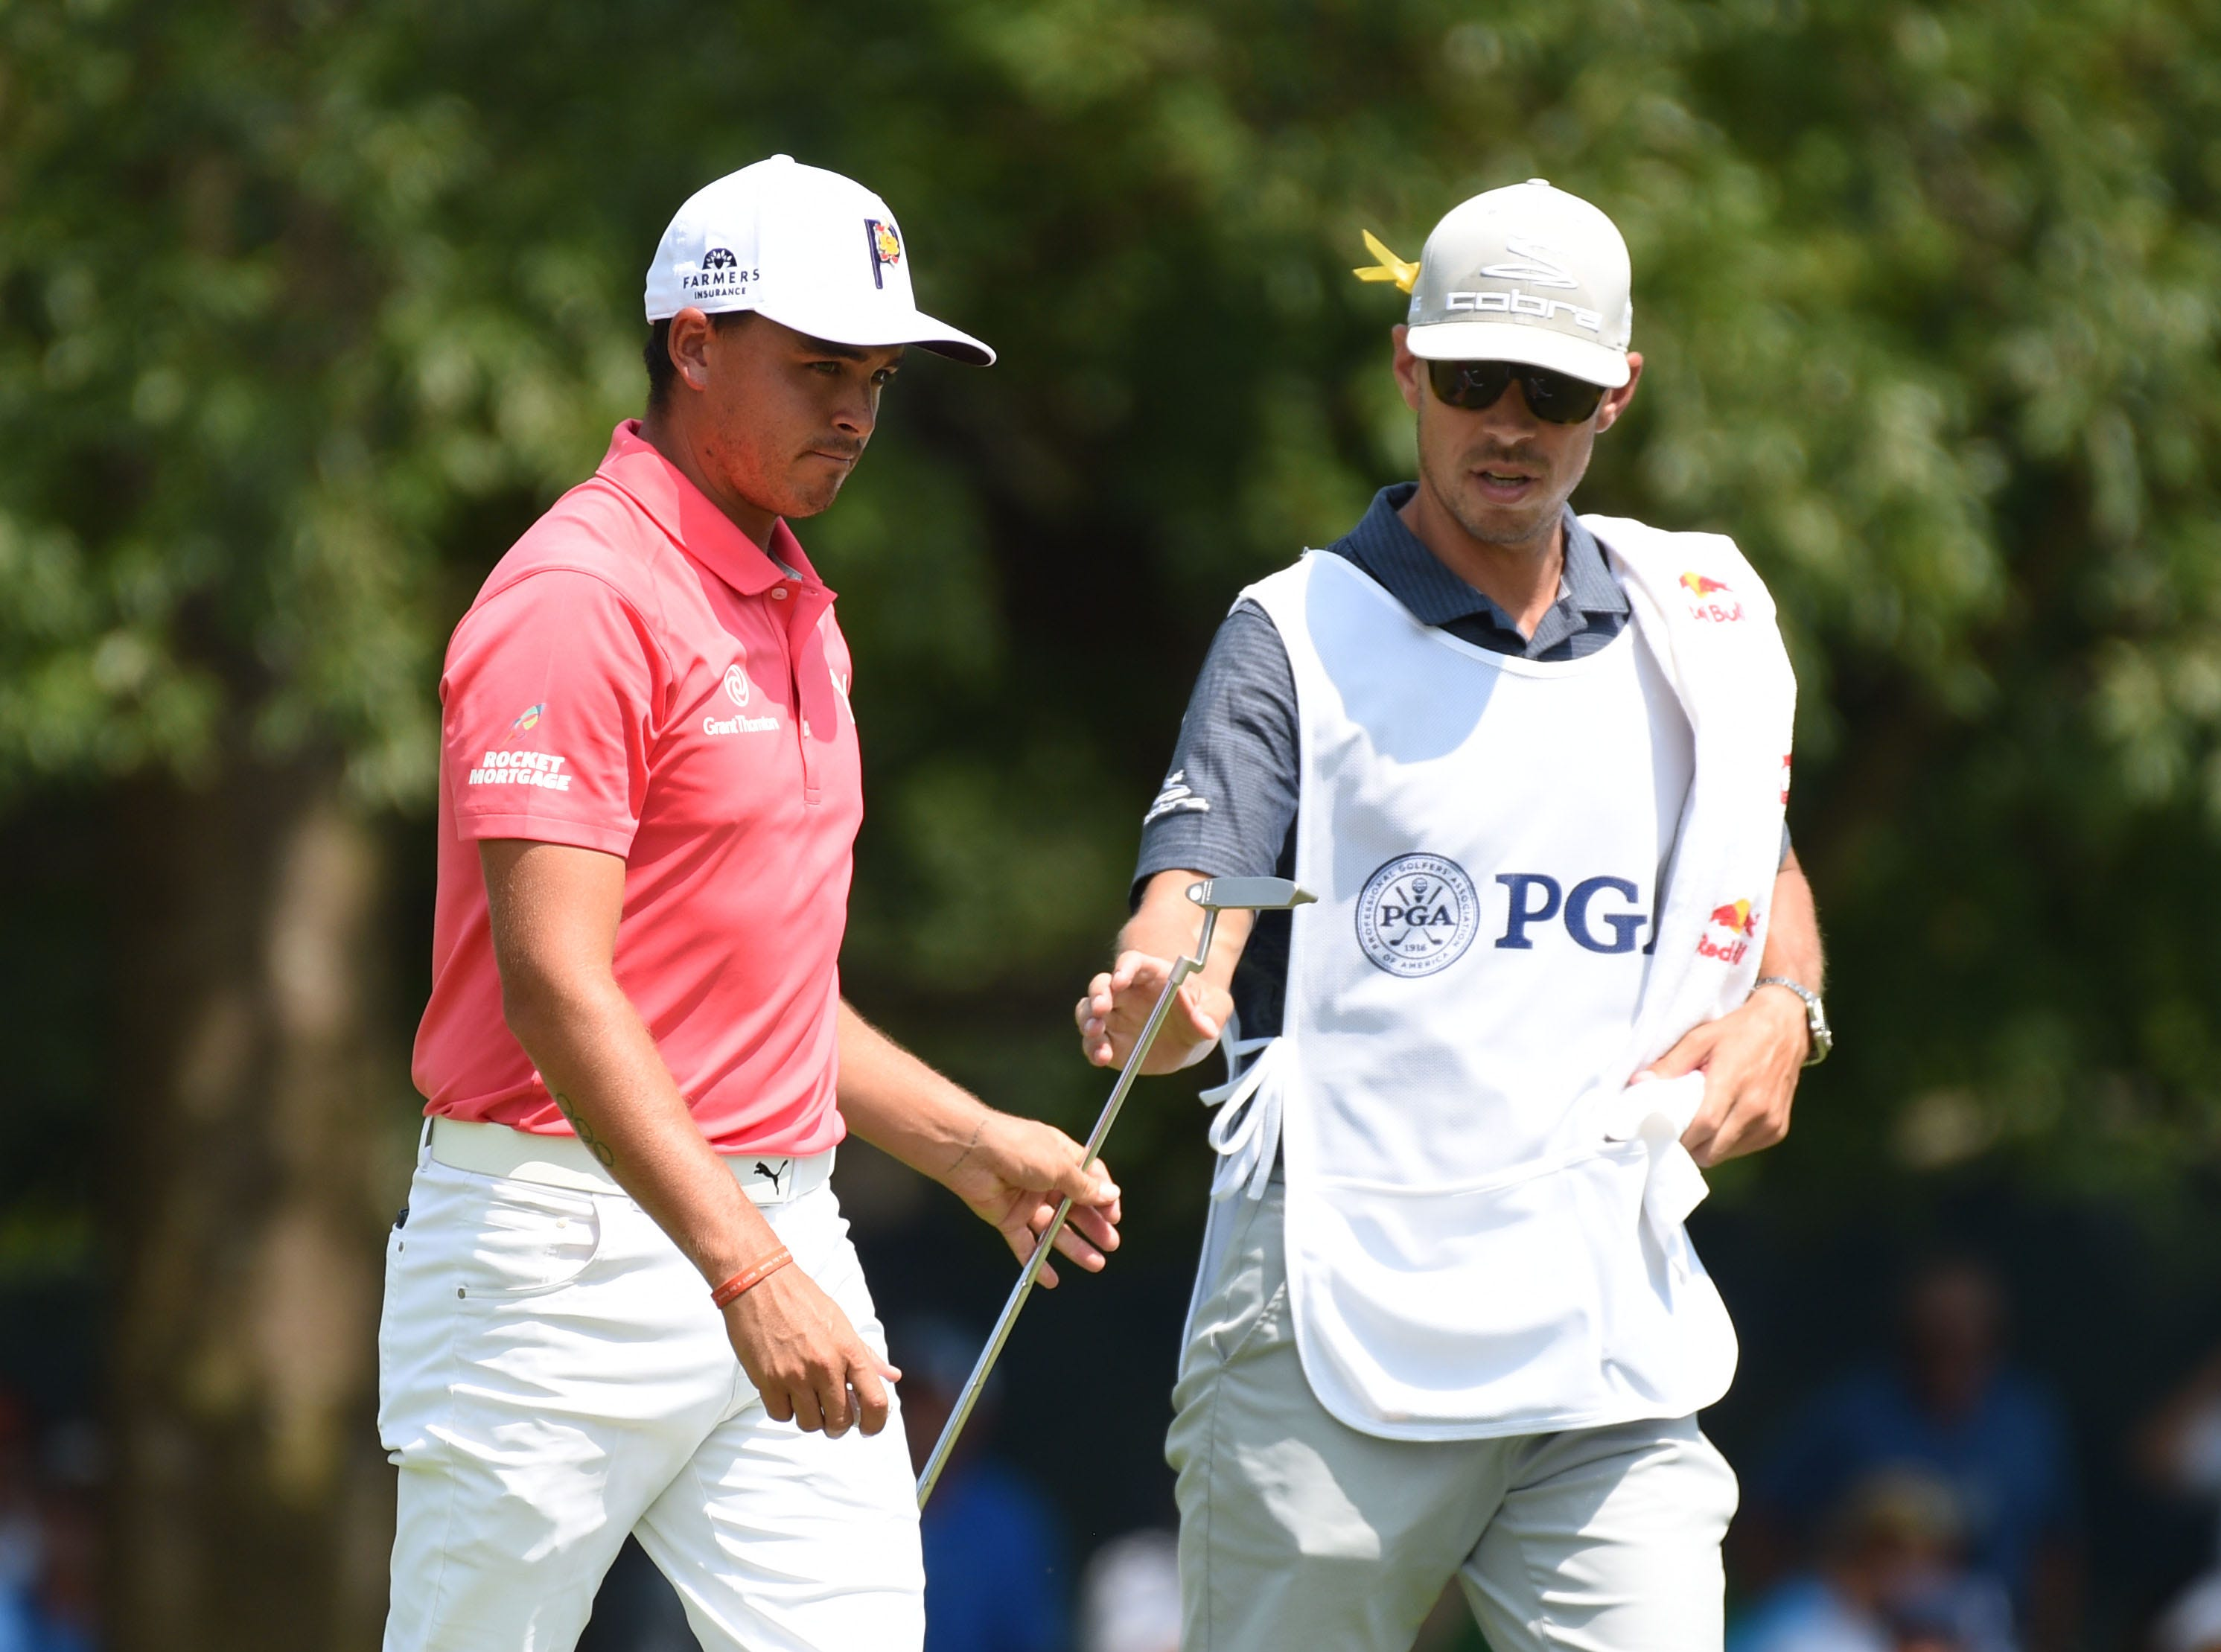 Rickie Fowler exchanges clubs with caddie Joe Skovron after putting on the 4th green during the third round of the PGA Championship. He's tied for third.